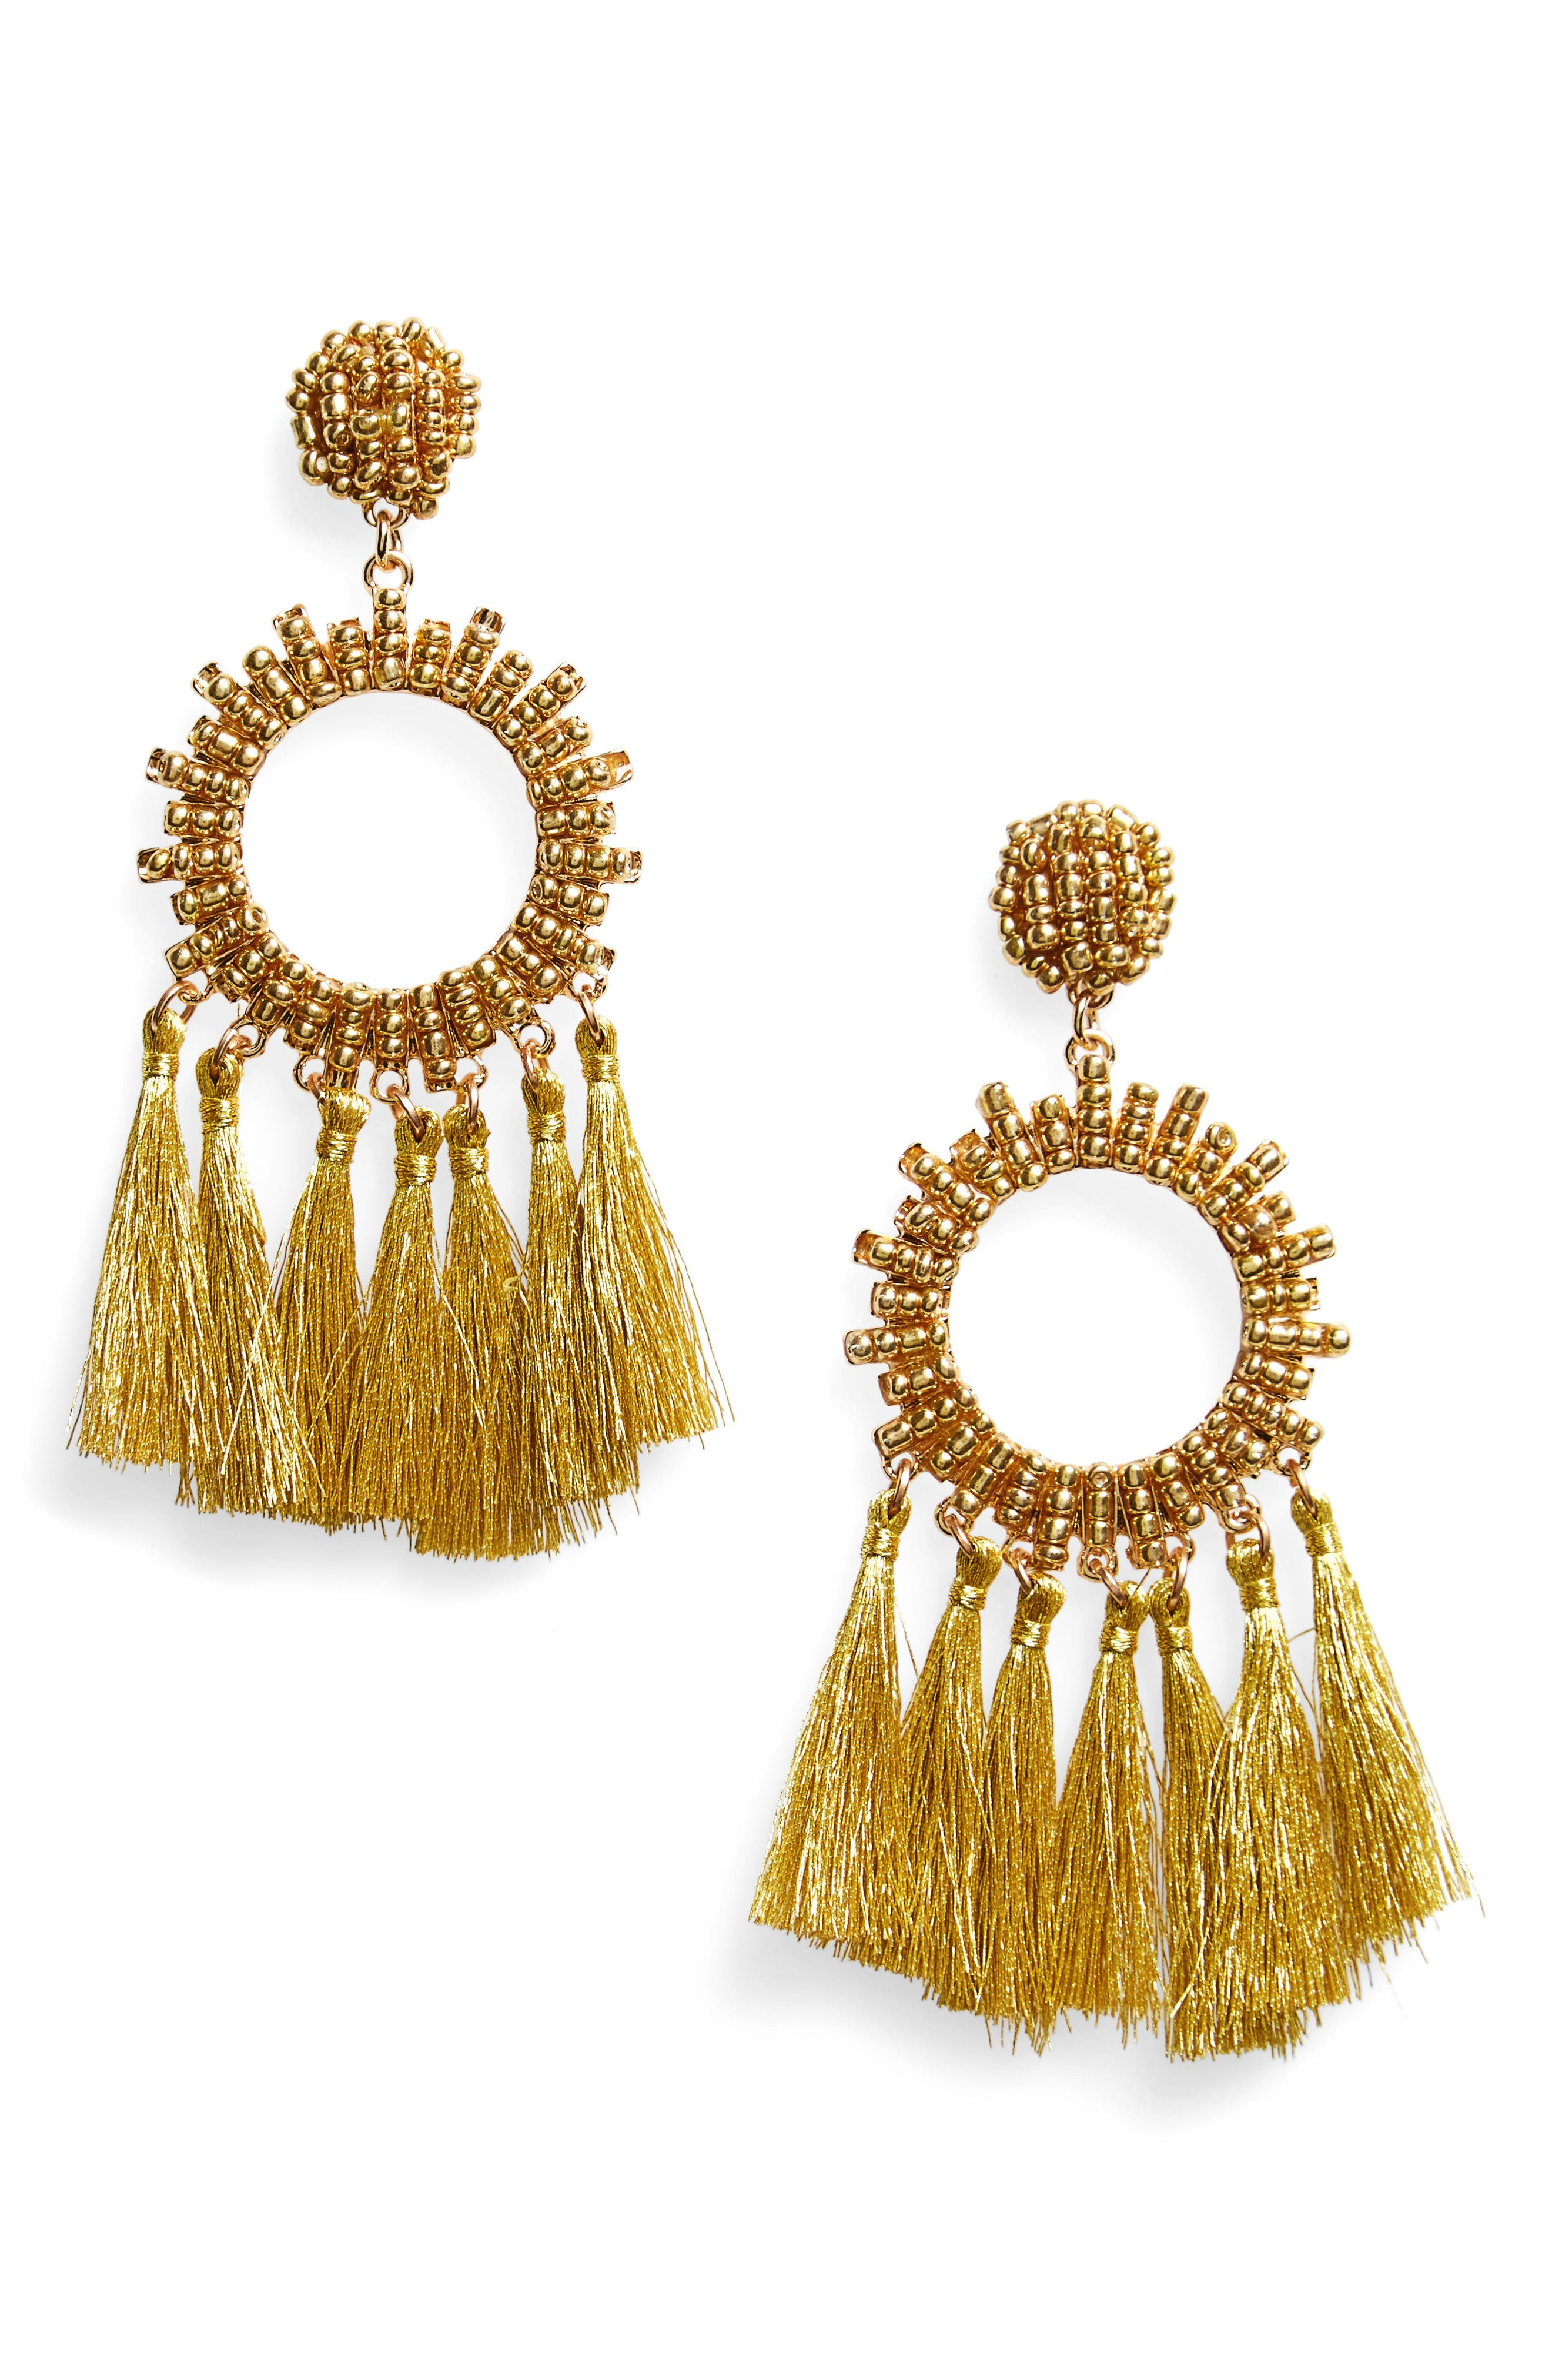 Cool Earrings For Daily Use Contemporary - Jewelry Collection Ideas ...